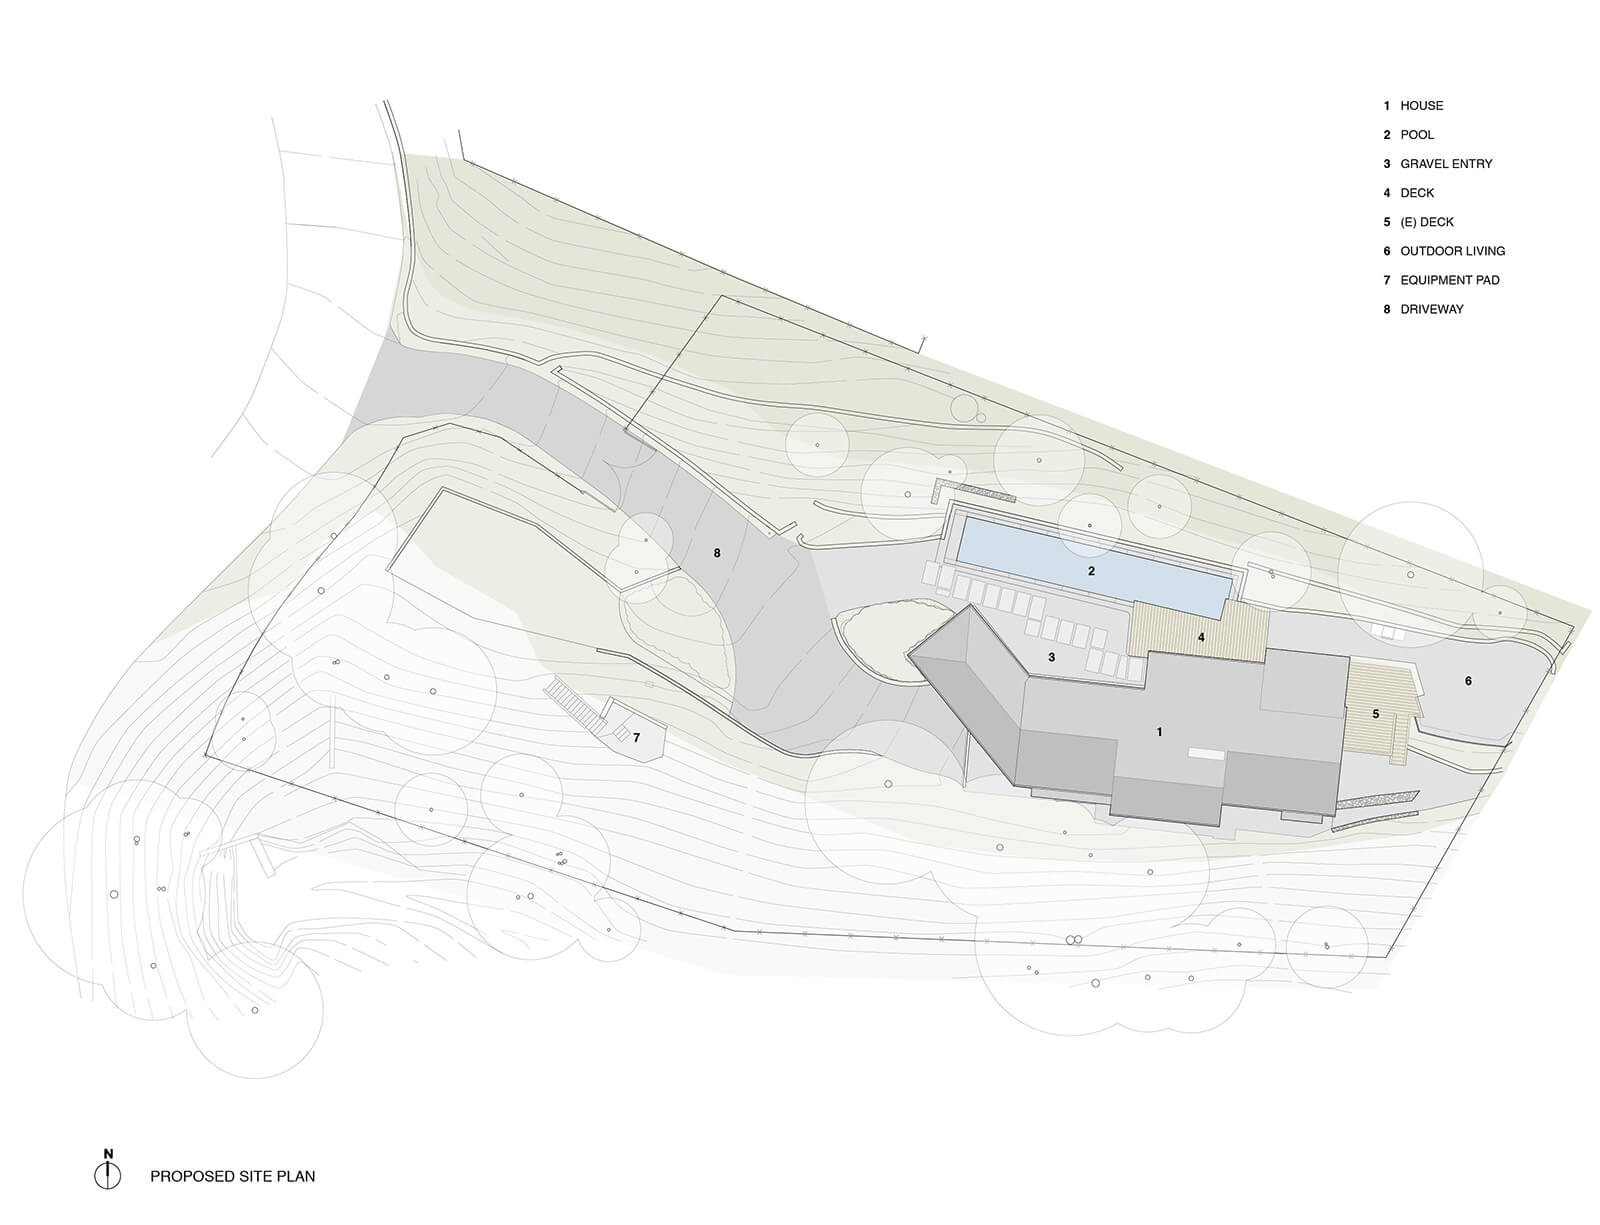 studio vara residential Kentfield drawing site plan